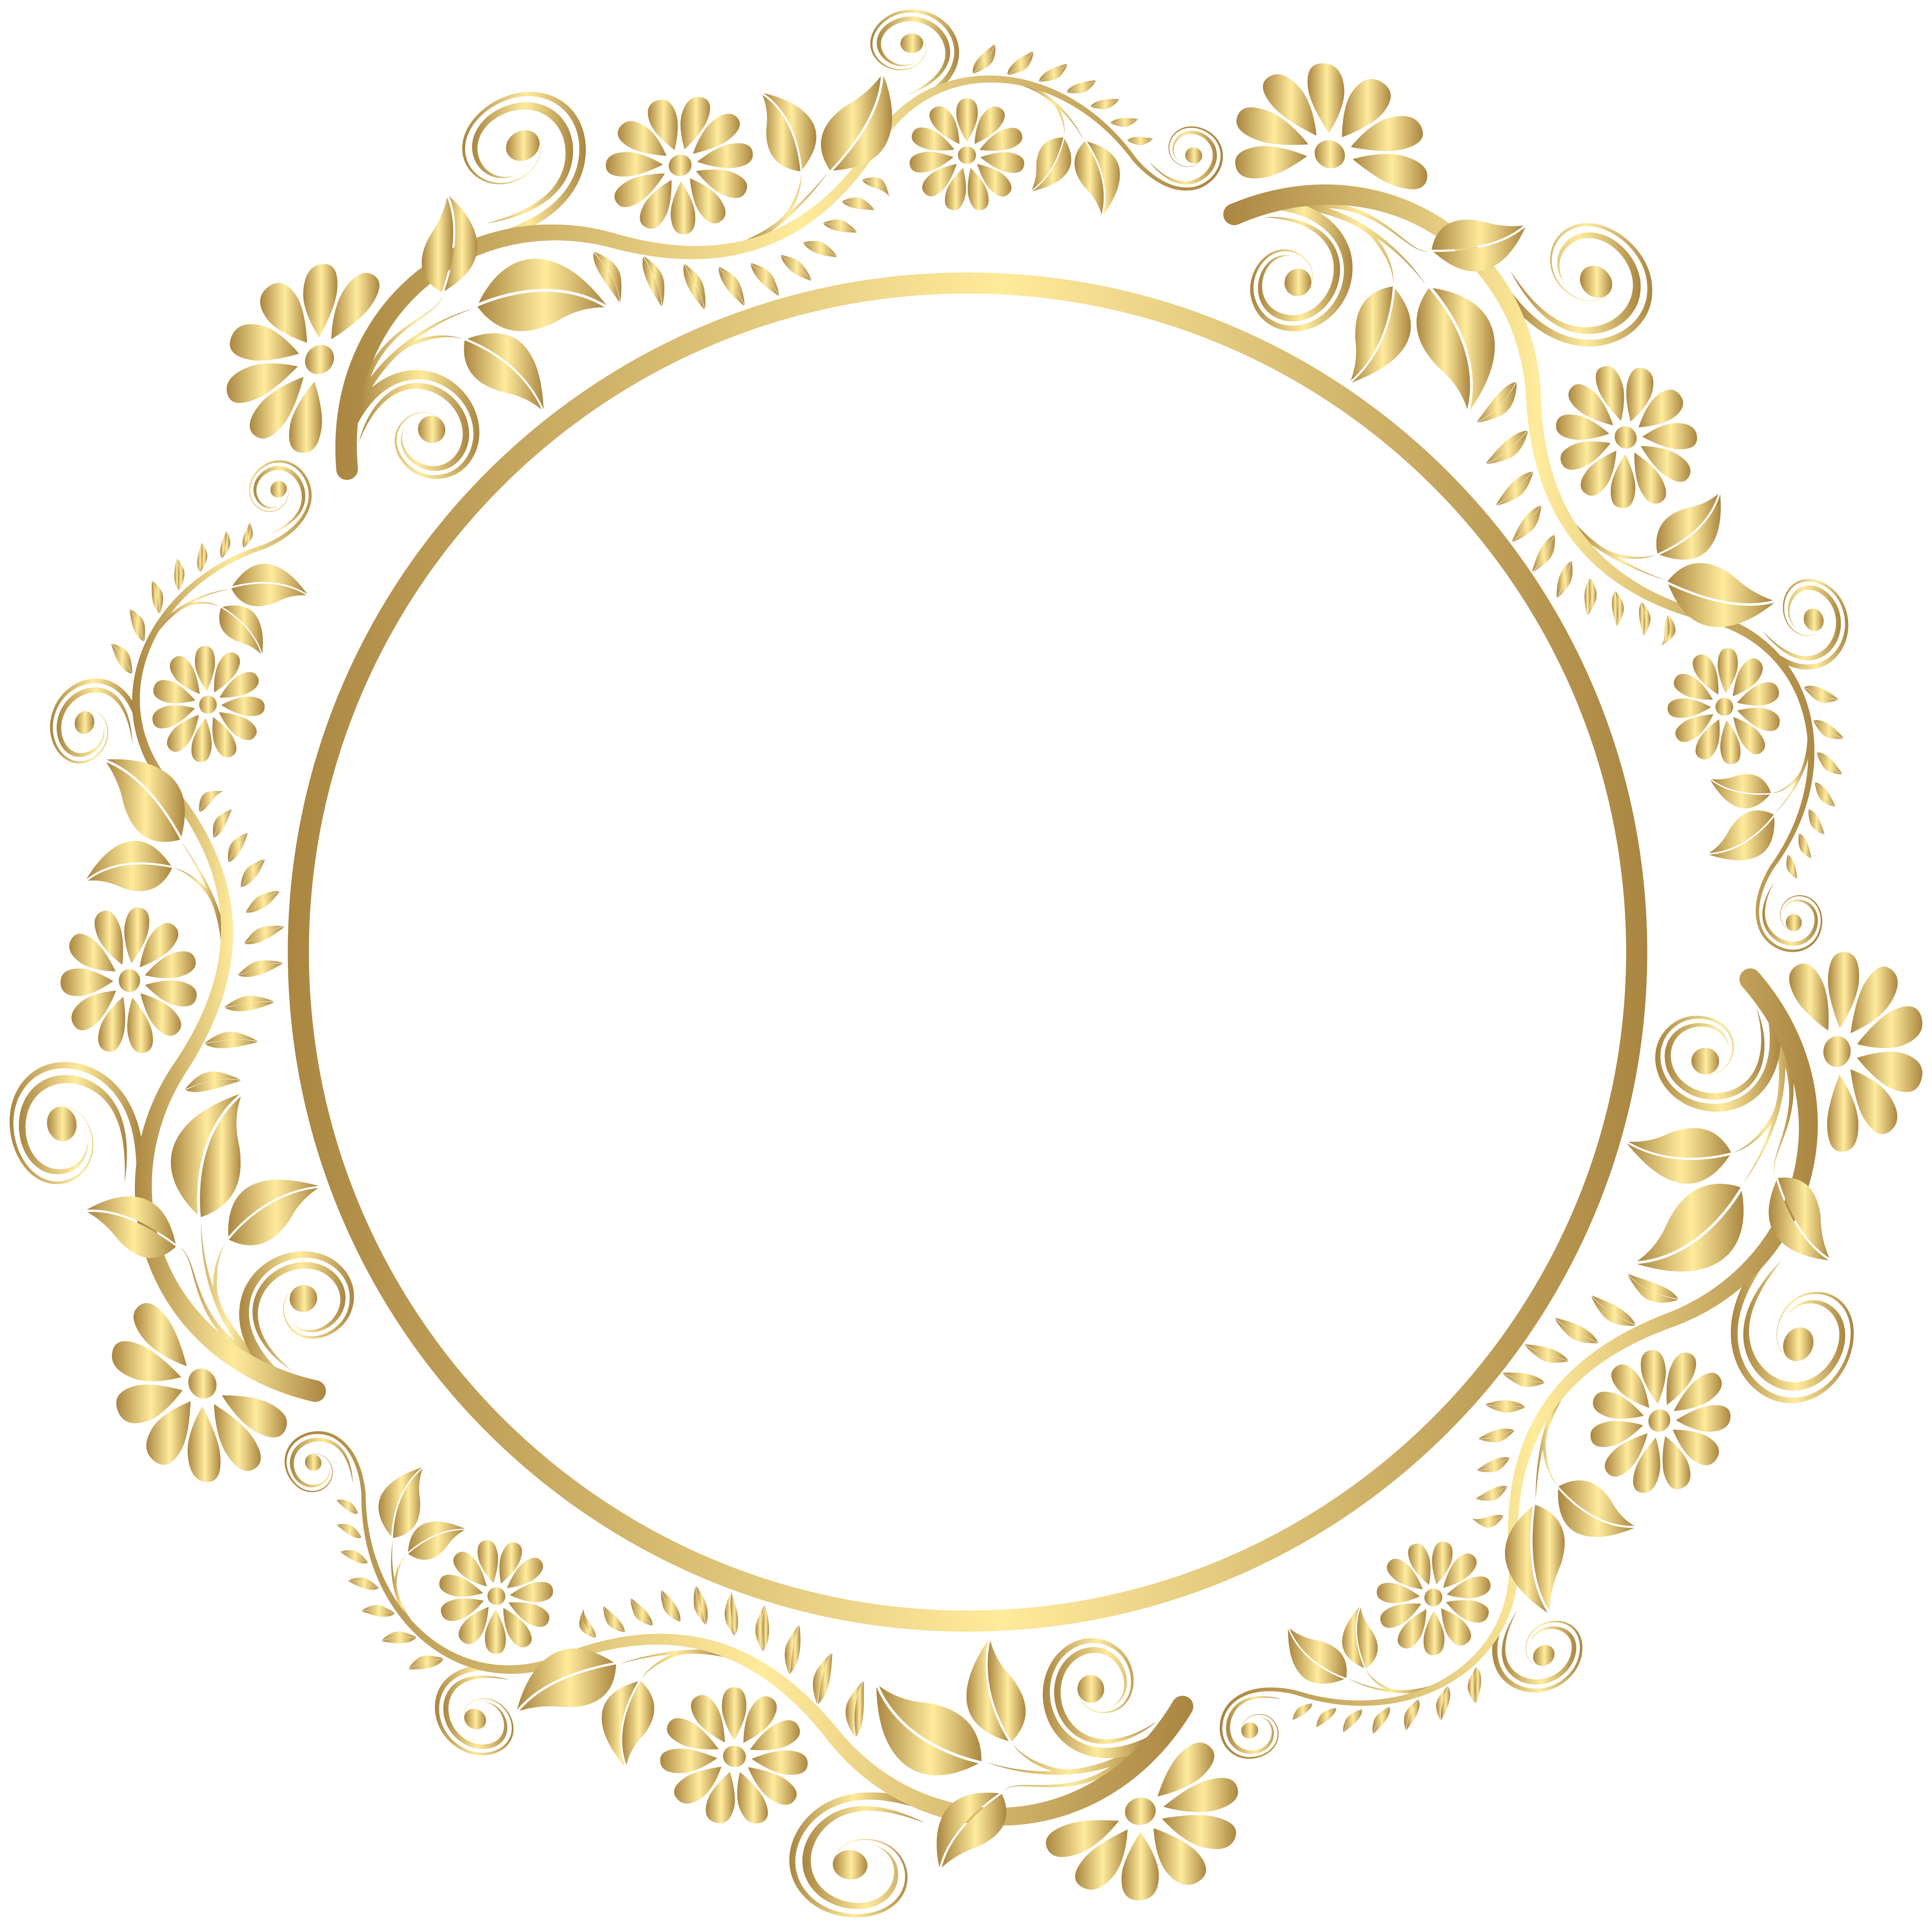 Circular Frame Png (105+ images in Collection) Page 3.